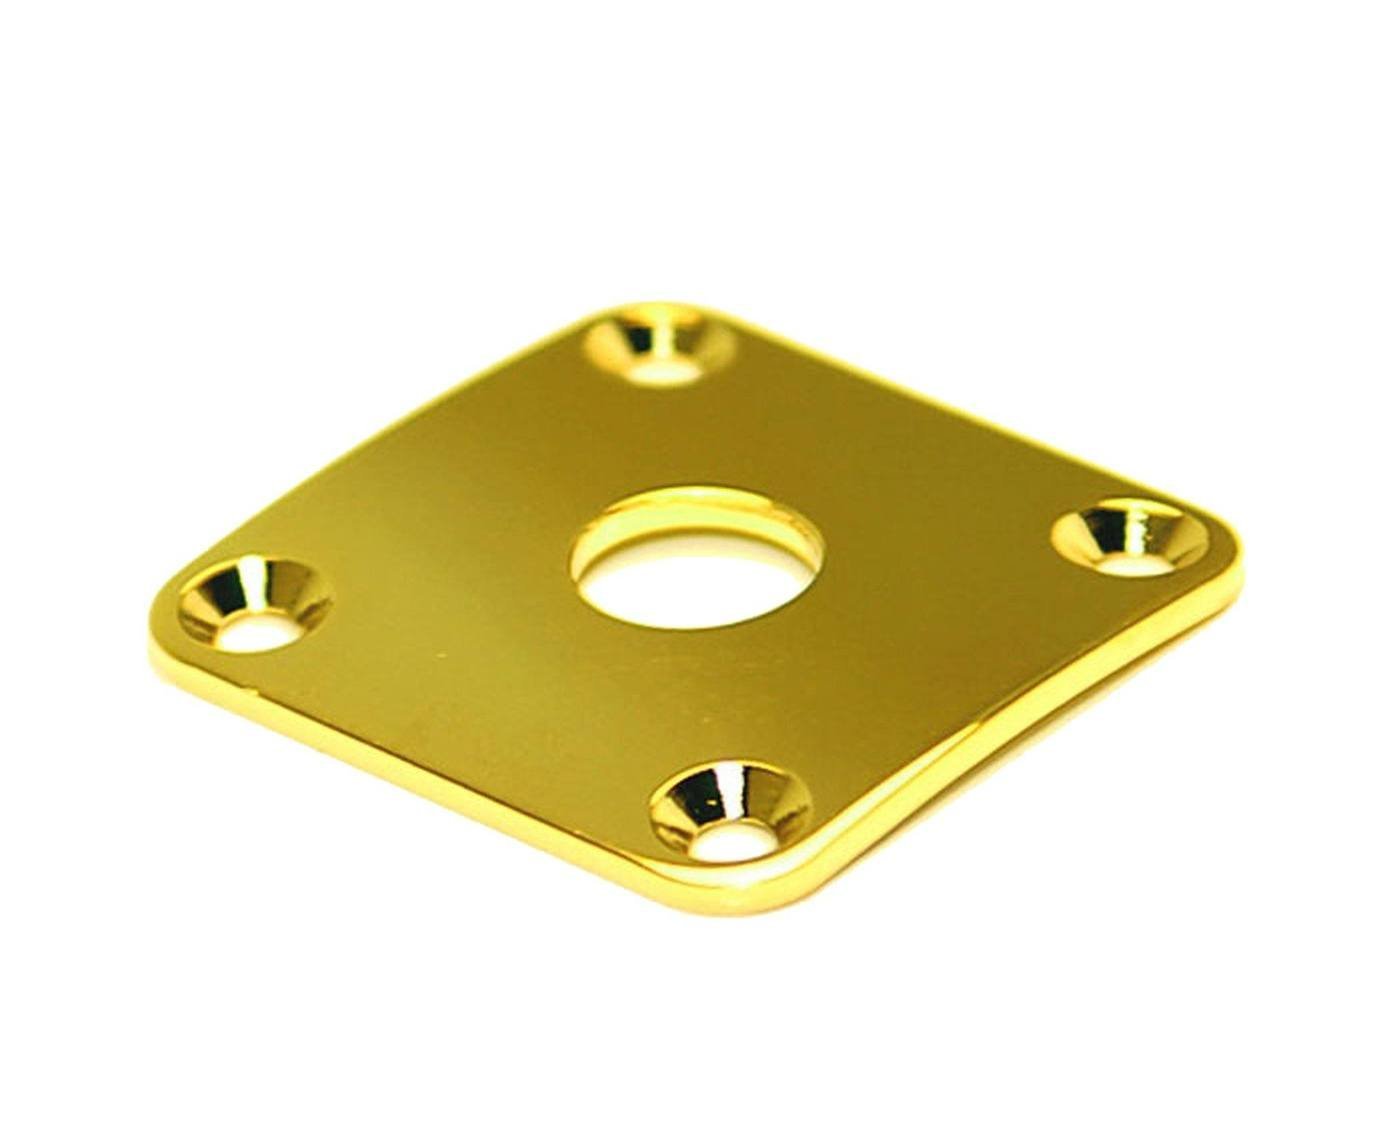 Allparts AP-0633-002 Gotoh Square Jackplate for Les Paul Gold